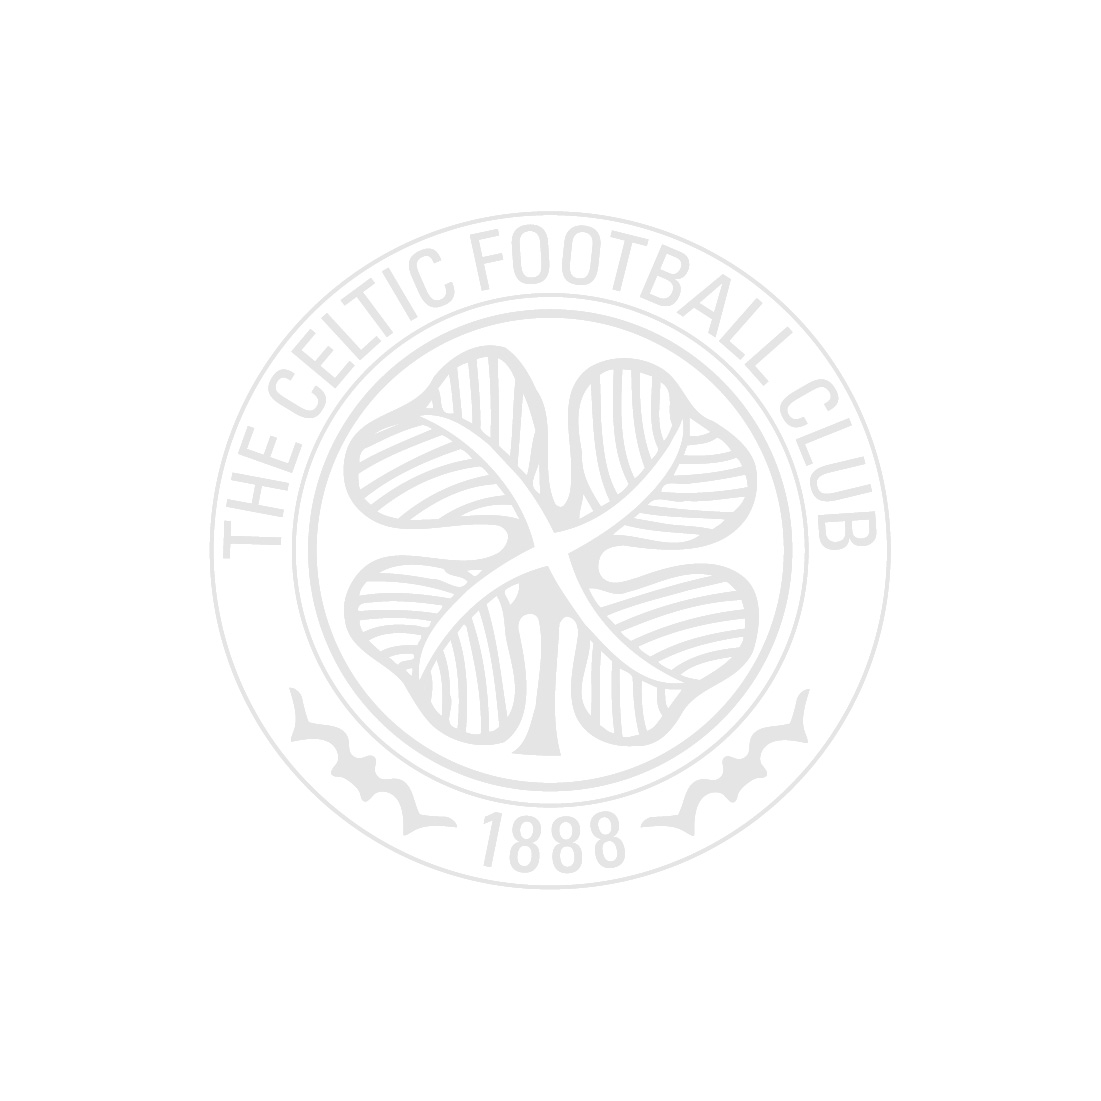 The Official History of Celtic Football Club Book